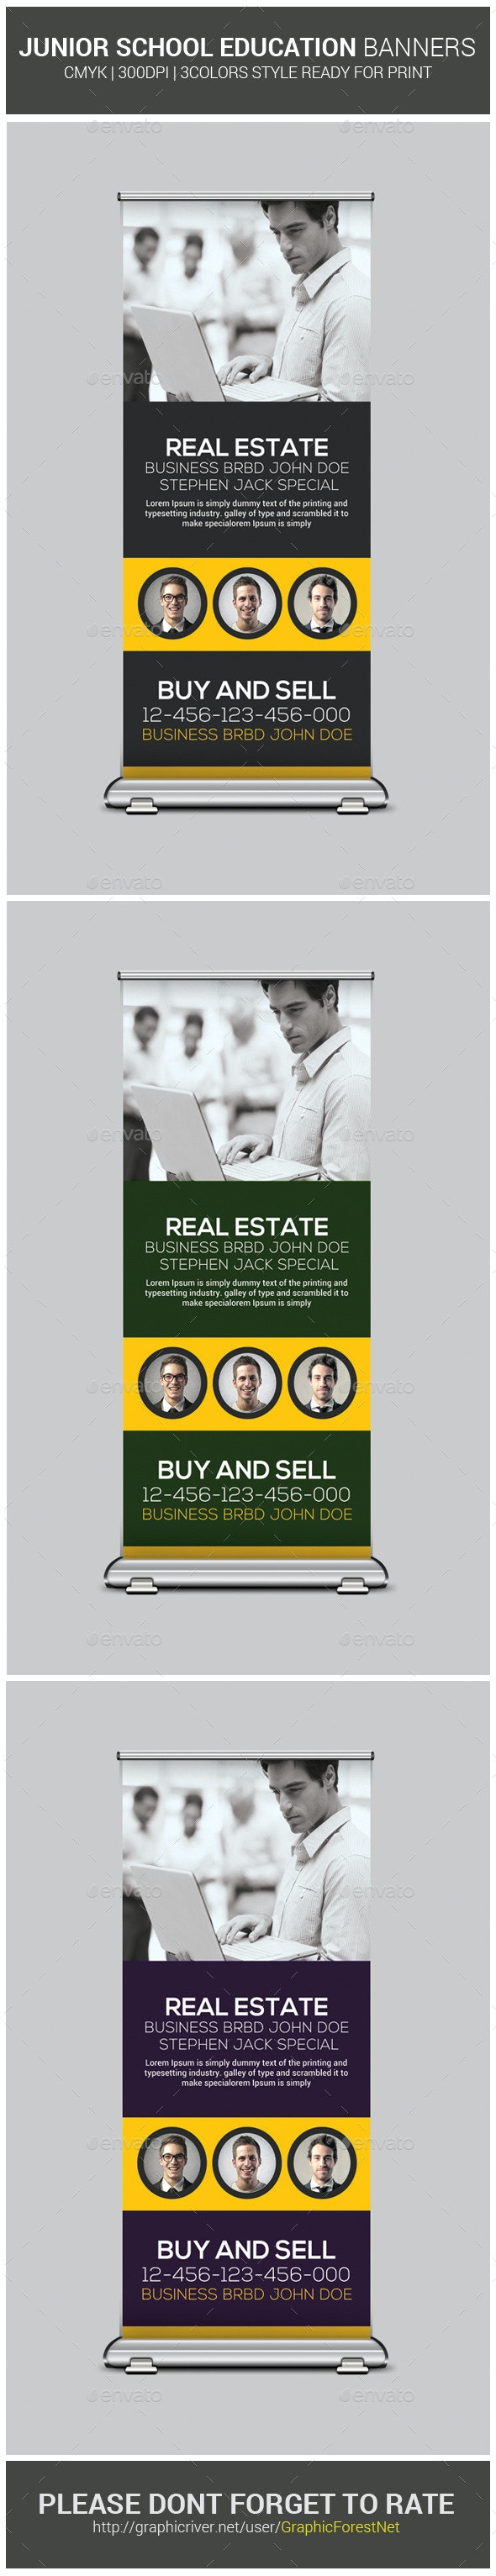 Real Estate Business Roll-Up Banners - Signage Print Templates